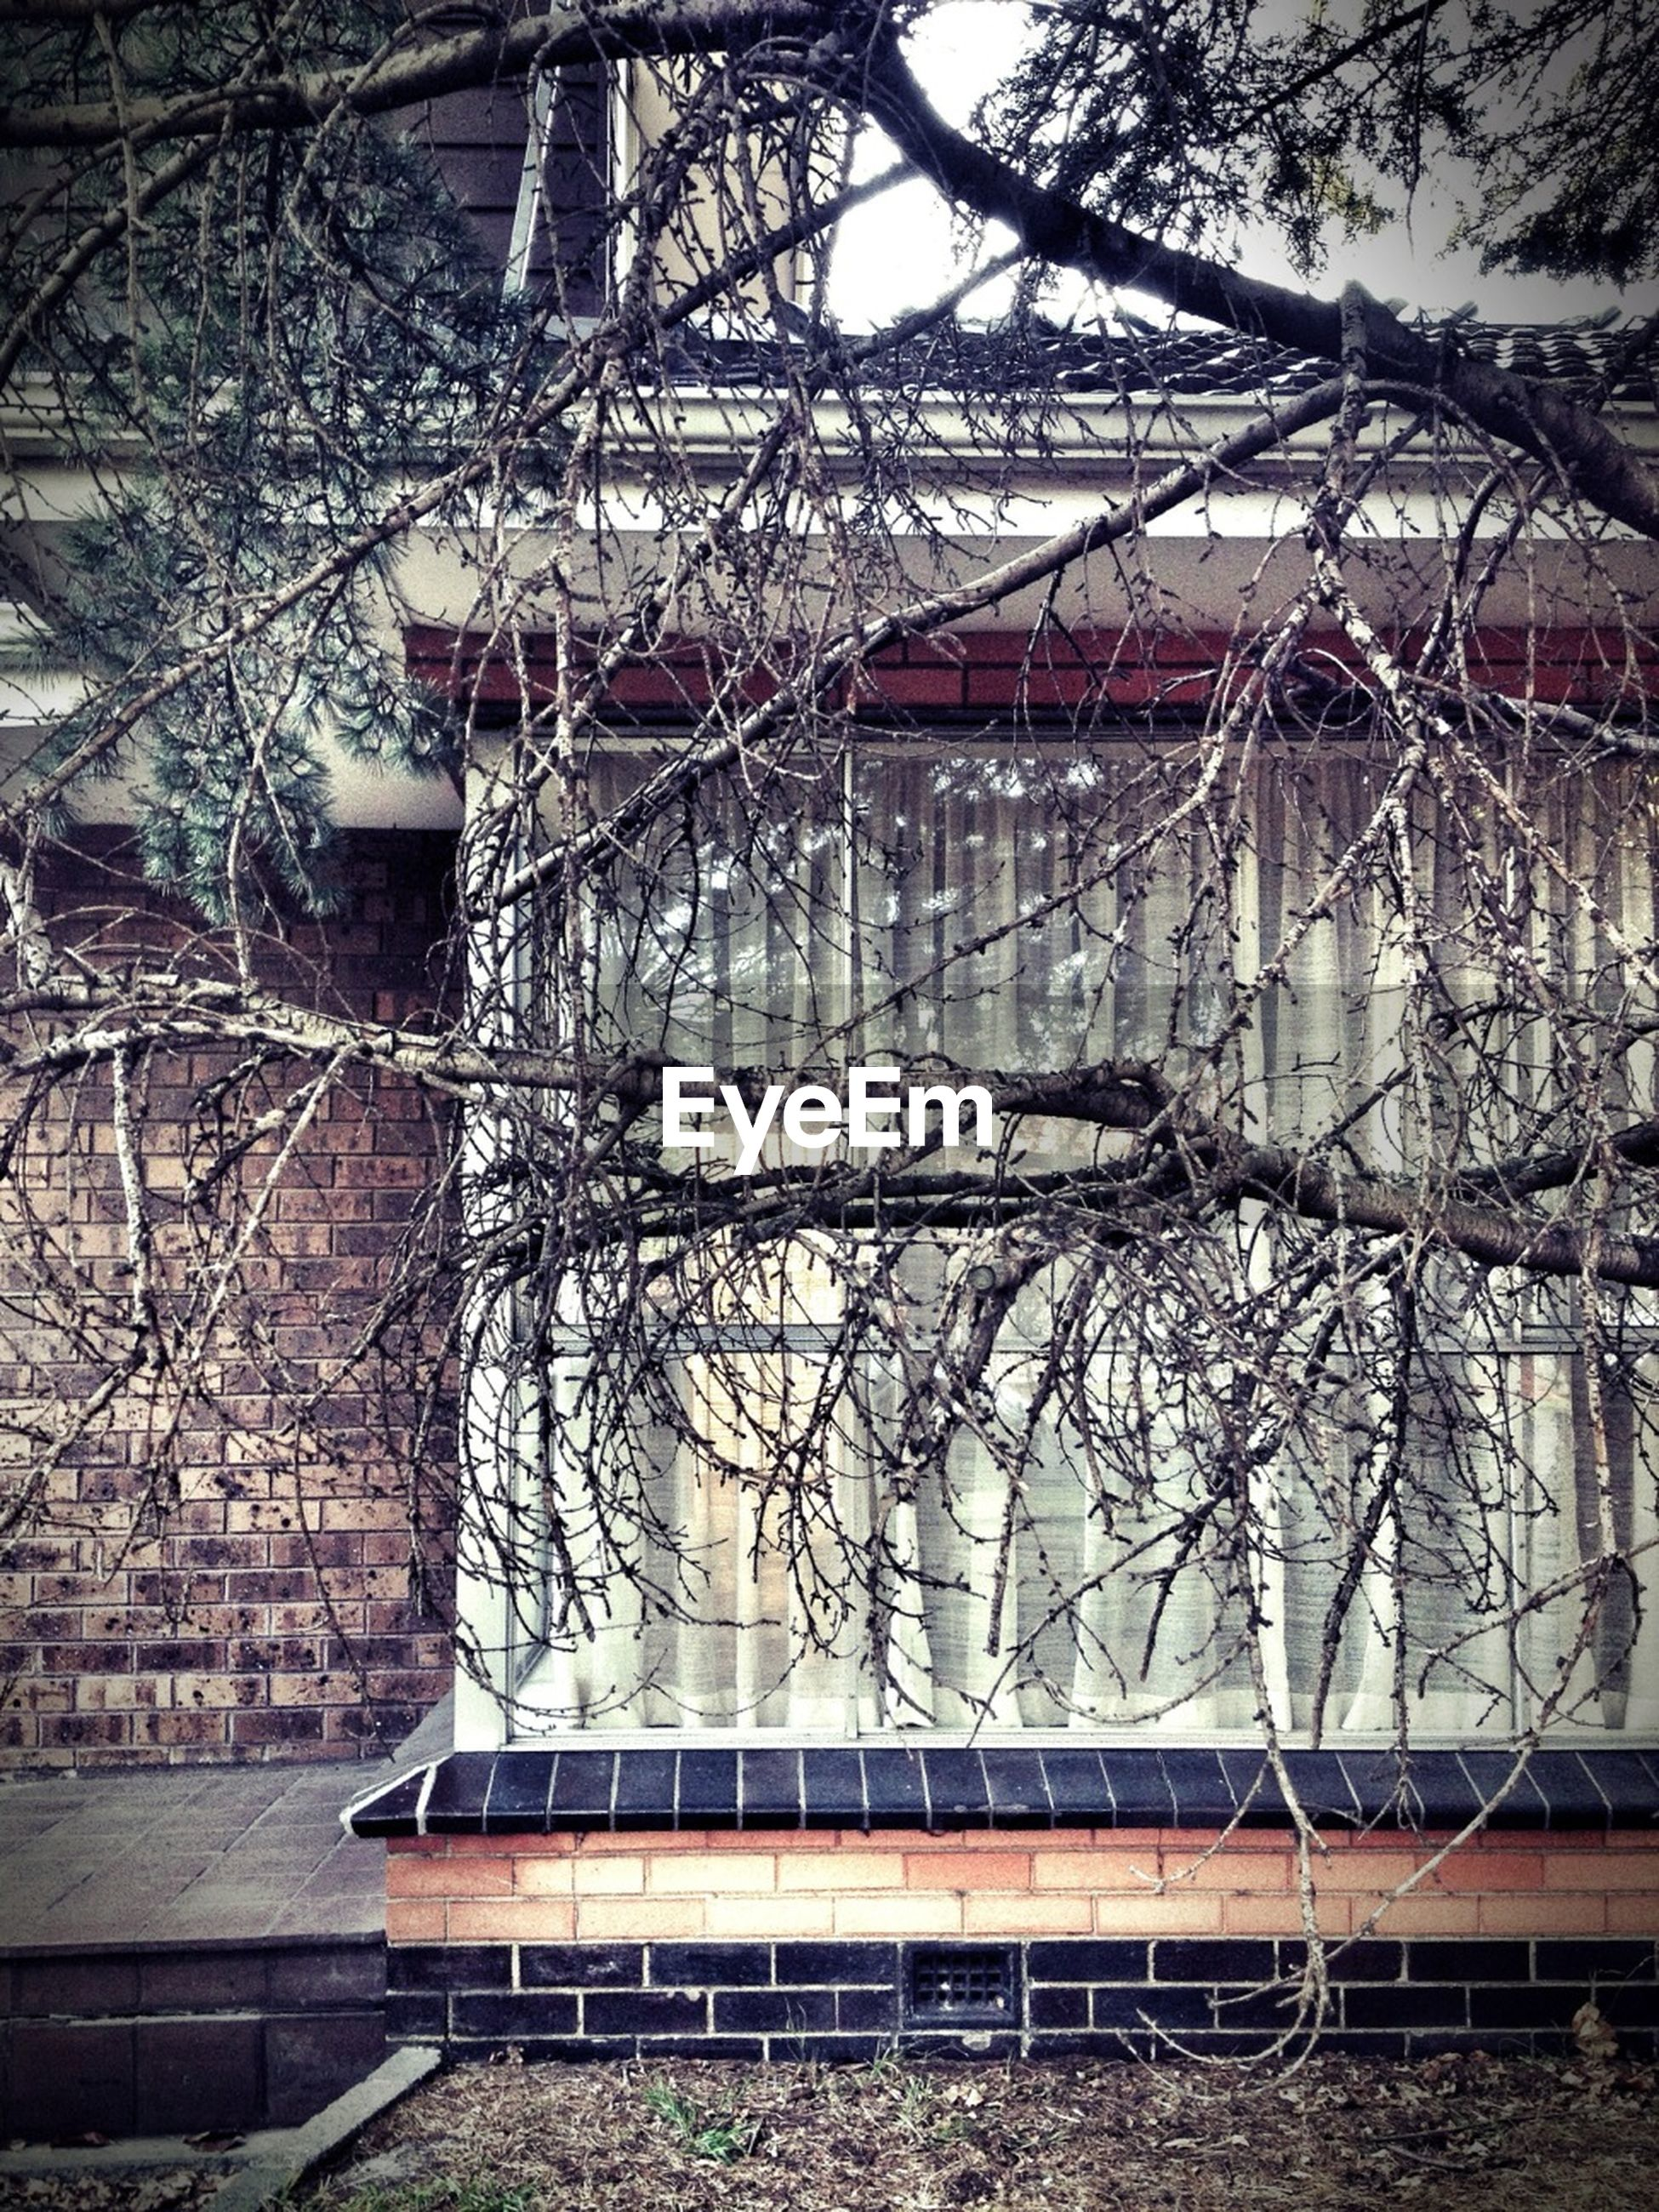 bare tree, built structure, tree, architecture, building exterior, metal, branch, railing, day, abandoned, outdoors, railroad track, no people, connection, fence, house, nature, metallic, winter, season